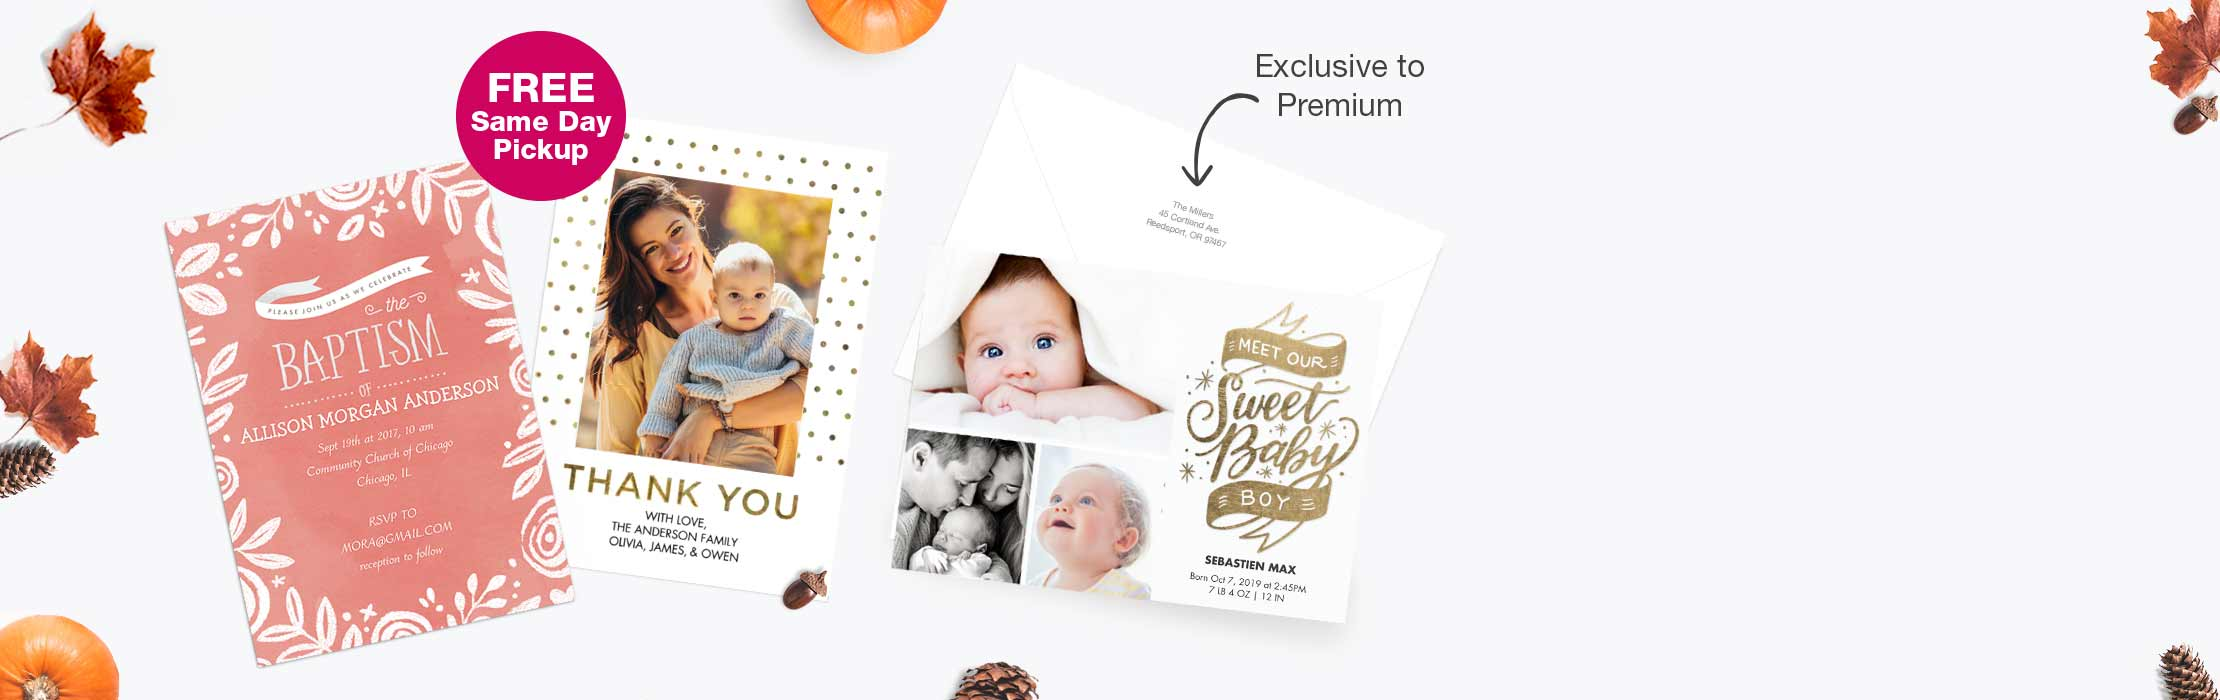 FREE Same Day Pickup. Extra-special hellos. Our heavyweight cardstock adds instant elegance to your Cards.